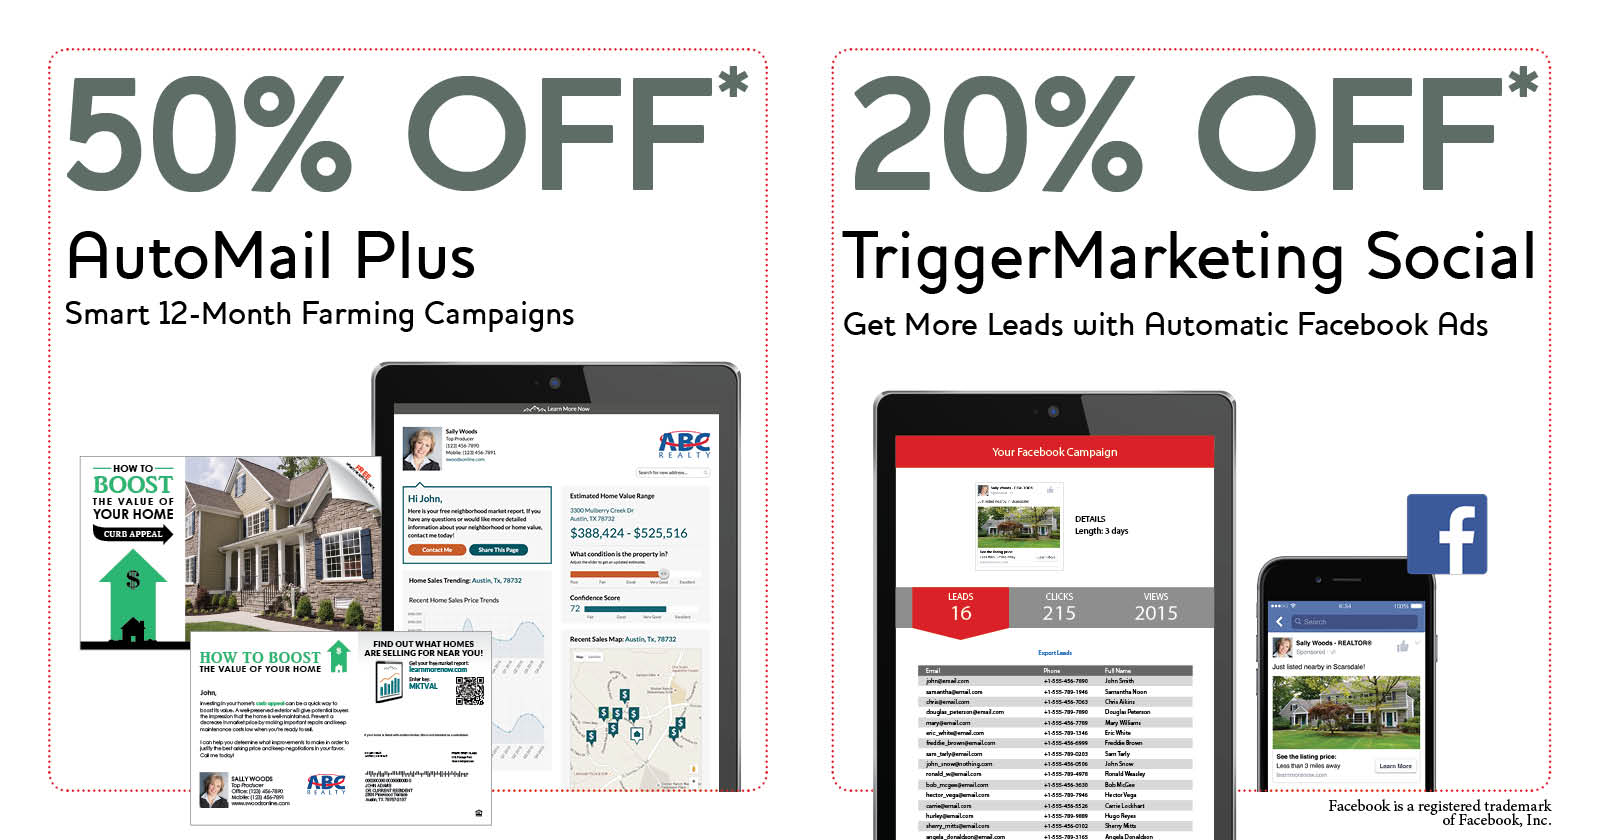 special offers for automail and triggermarketing social